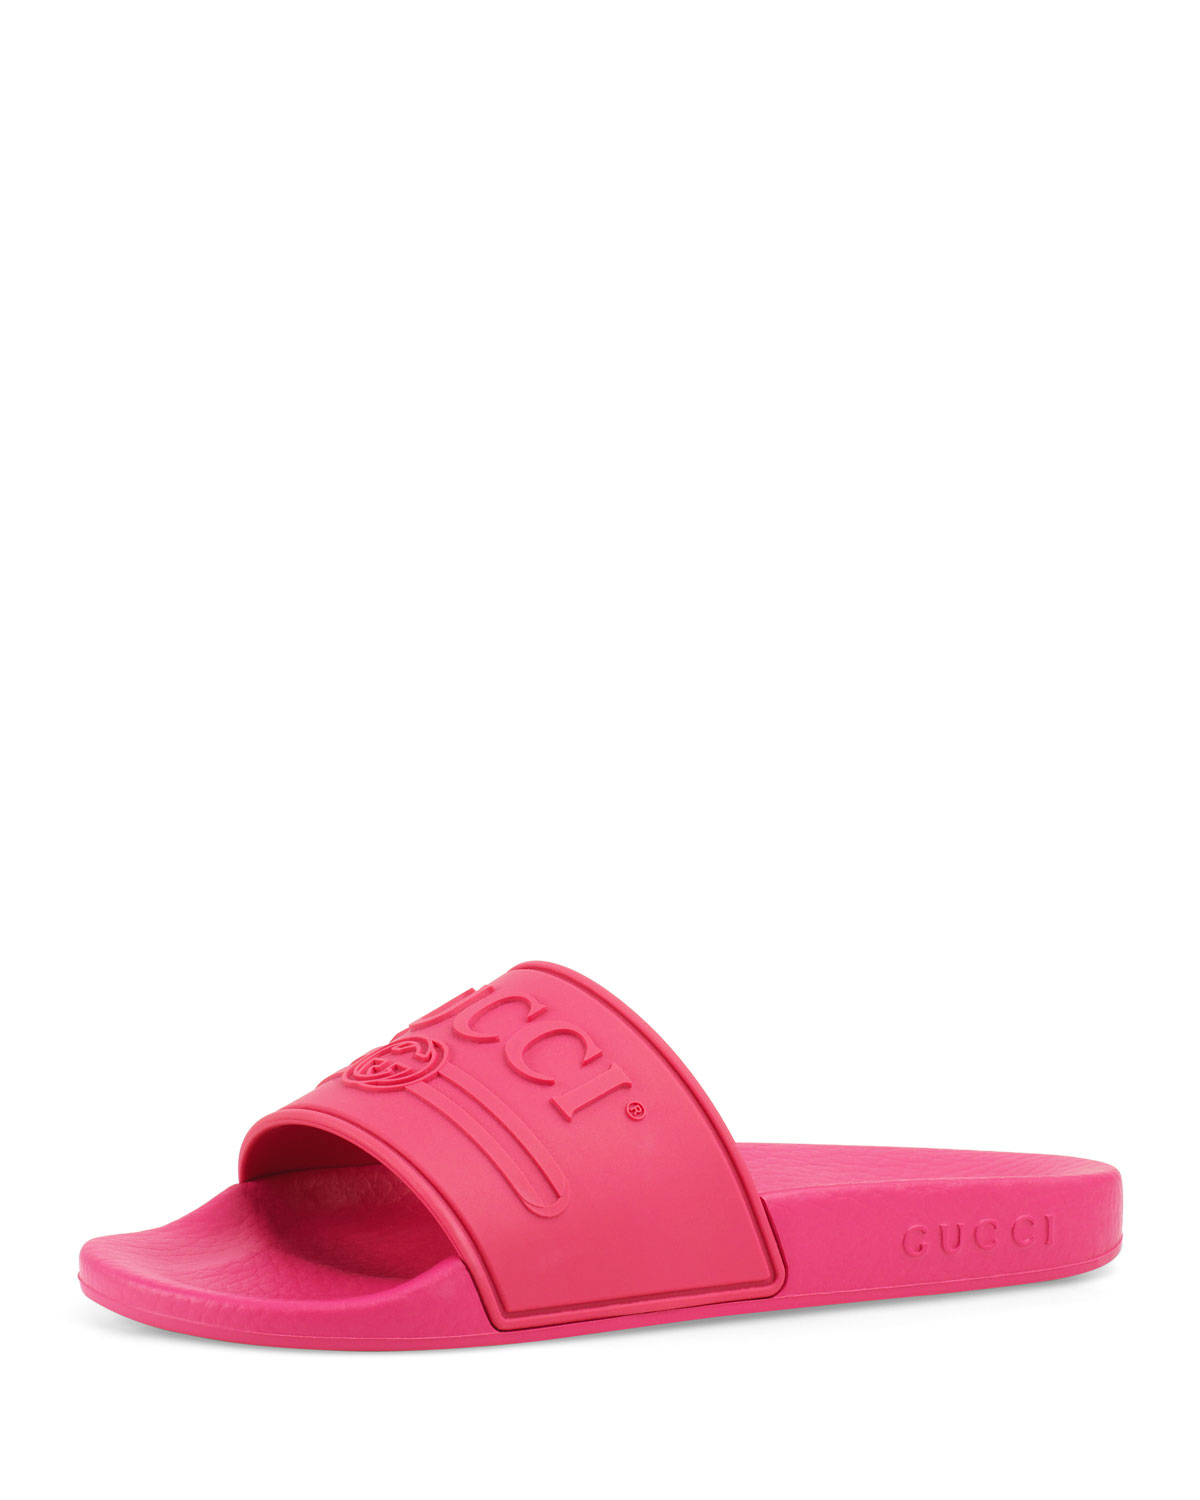 gucci toddler sandals off 61% - axnosis